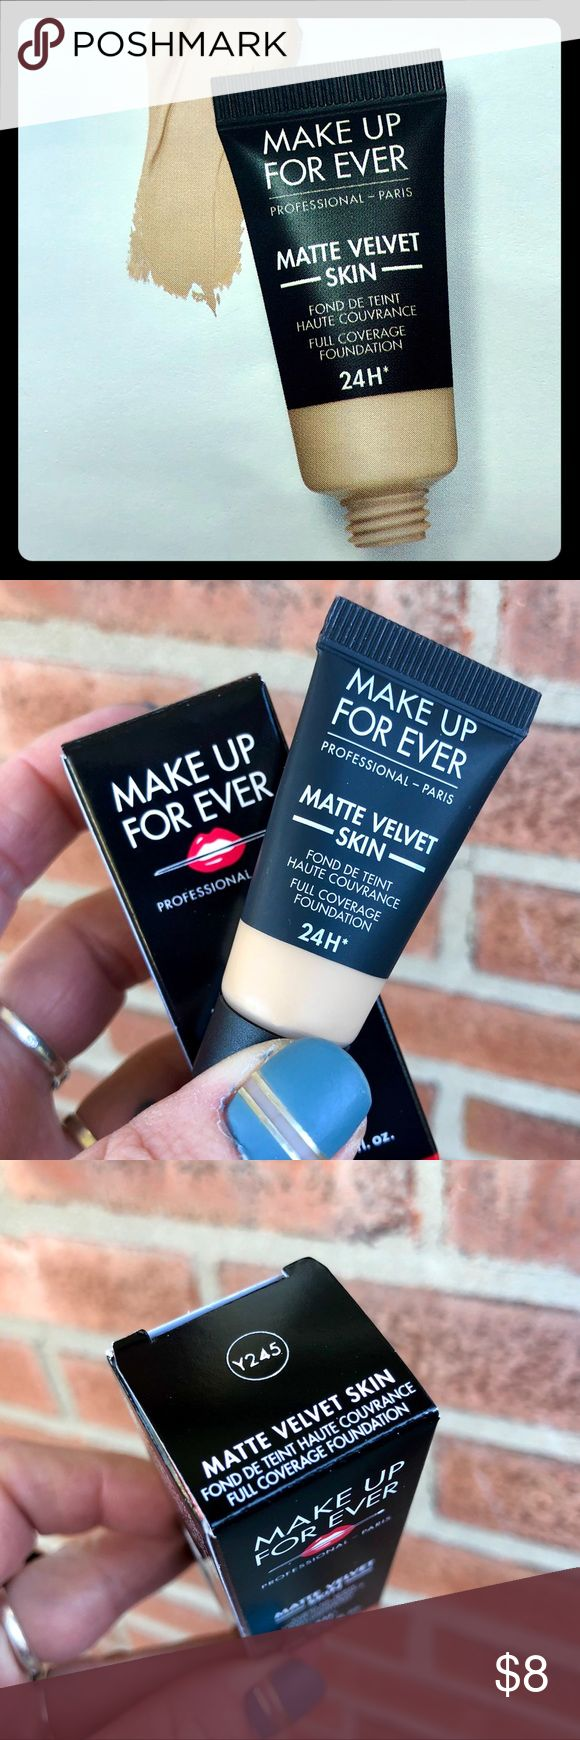 [Make Up For Ever] BNIB Deluxe Matte Velvet Skin NWT (With